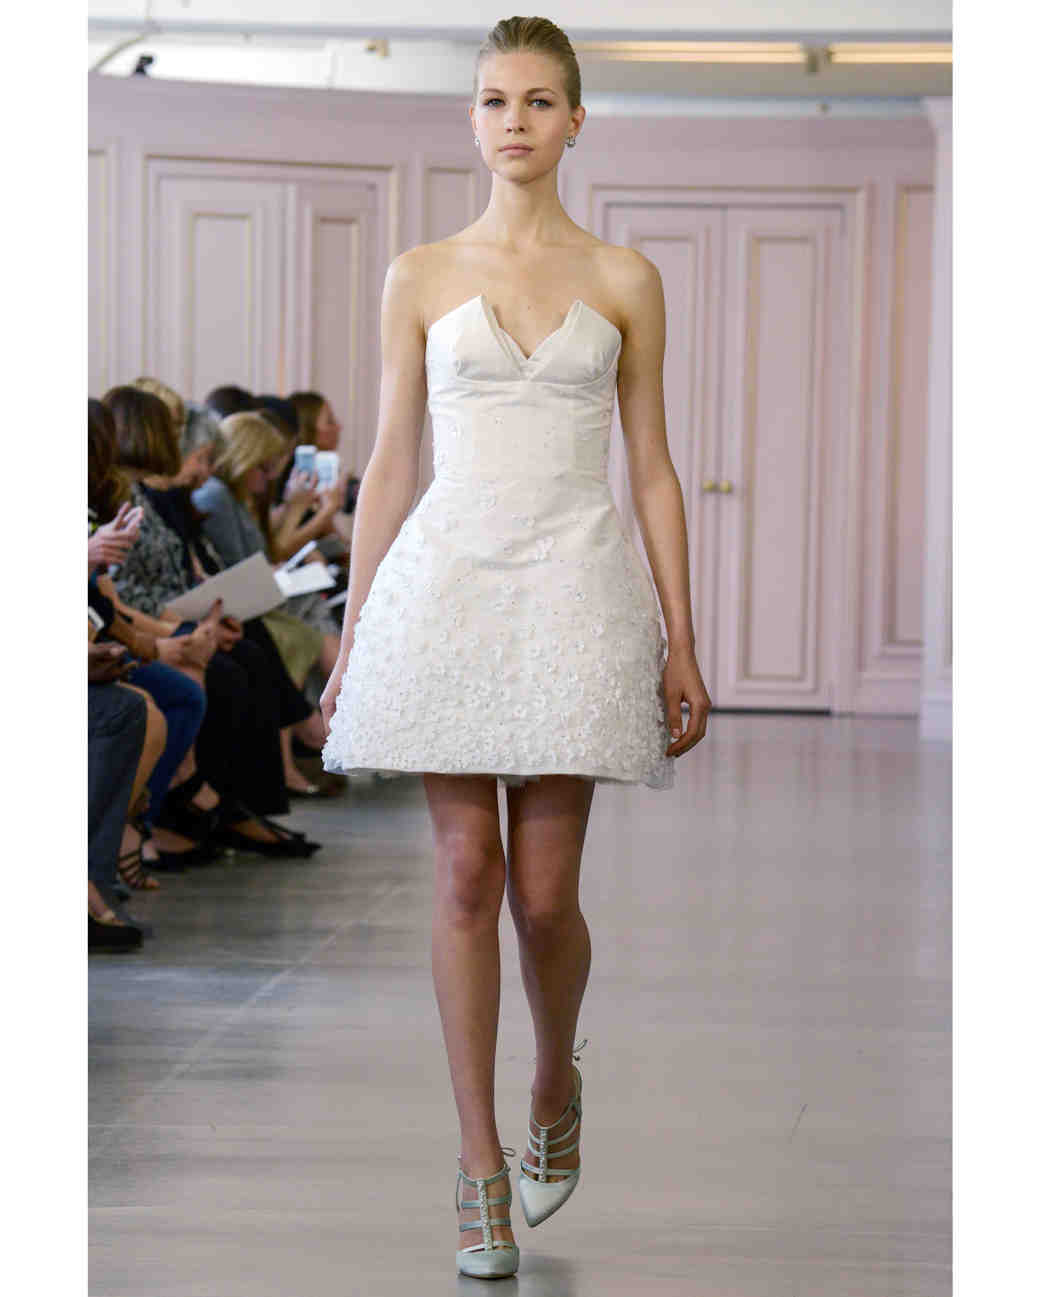 Wedding Gowns Ri: 50 Wedding Dresses For Every Bride's State Pride